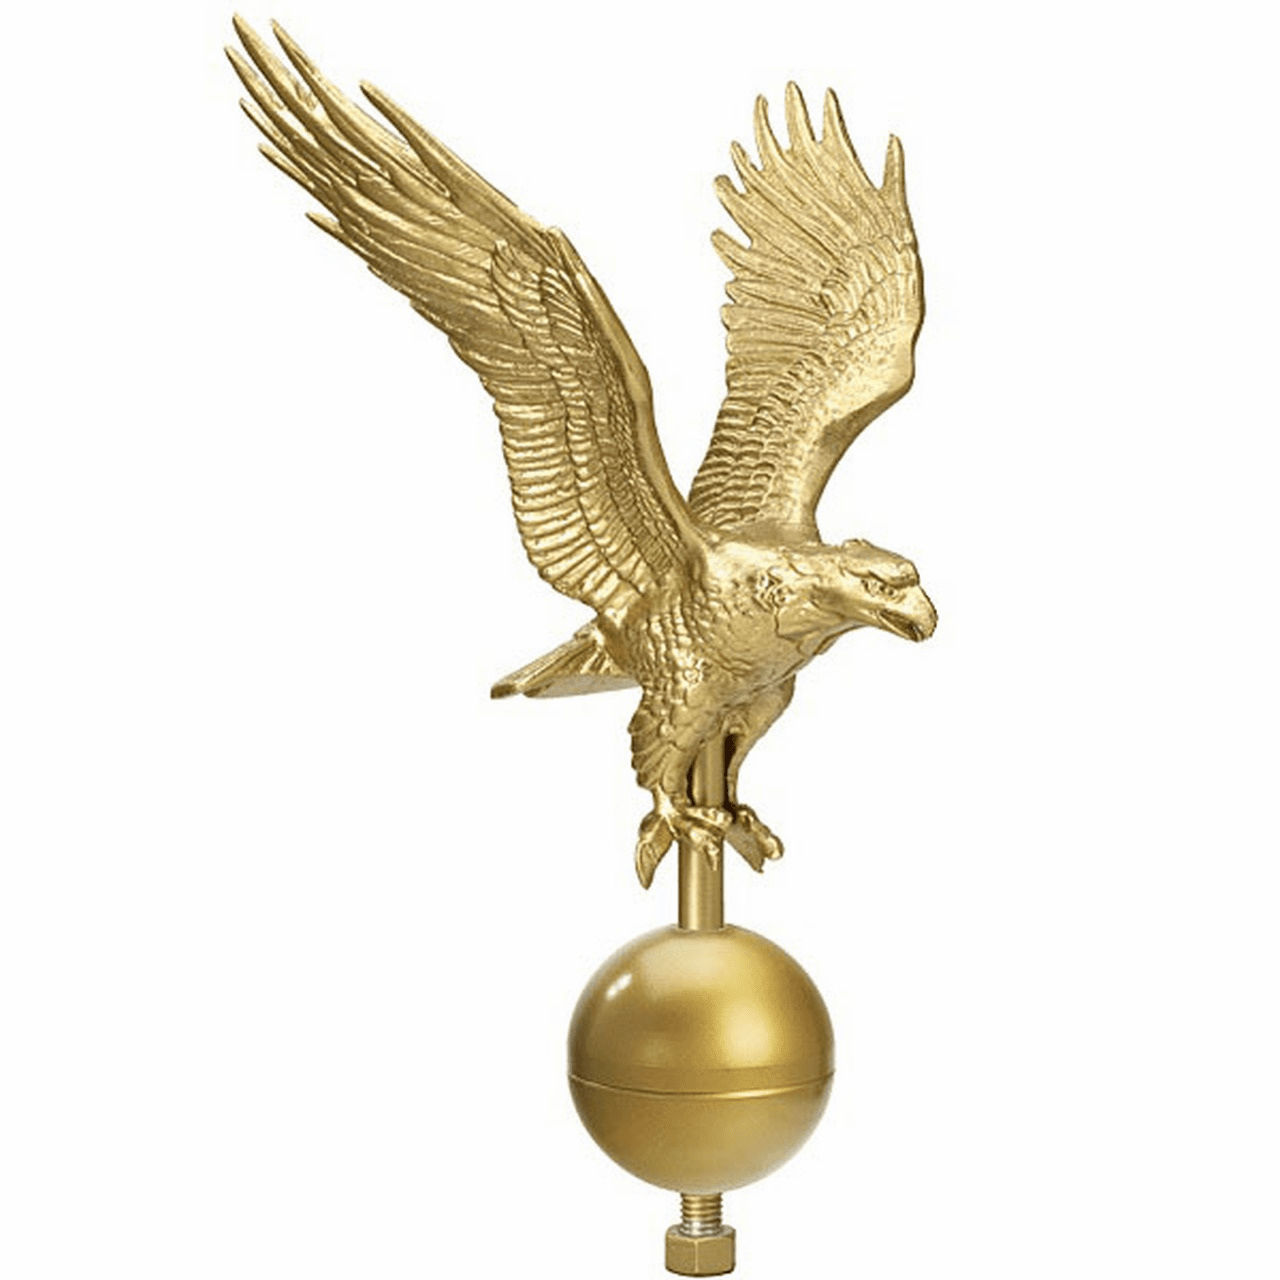 MEDIUM GOLD EAGLE 15ft-25ft Flagpoles